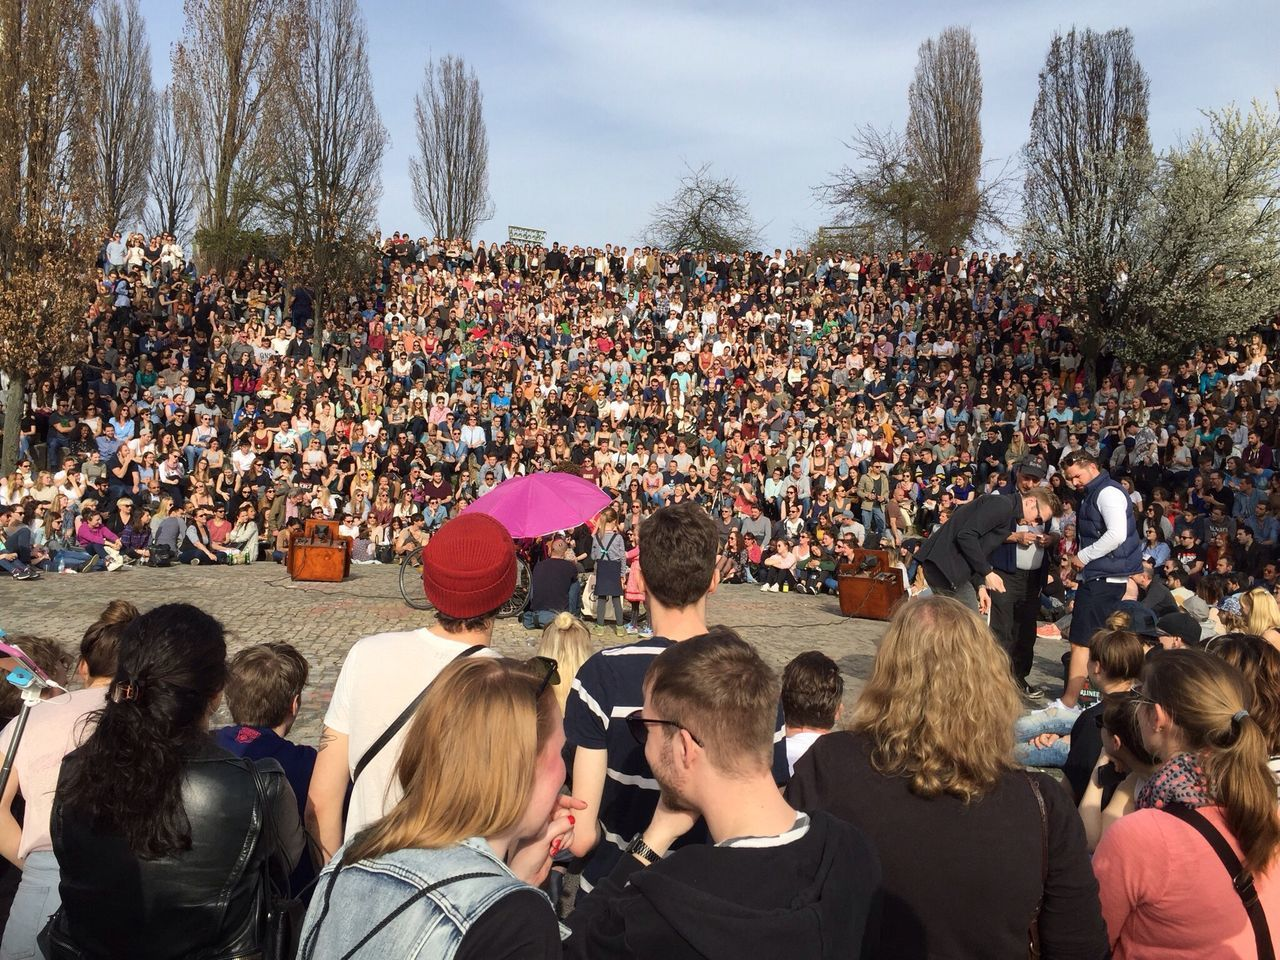 large group of people, crowd, watching, leisure activity, women, music, men, arts culture and entertainment, spectator, togetherness, audience, day, fan - enthusiast, real people, outdoors, tree, people, sky, adult, adults only